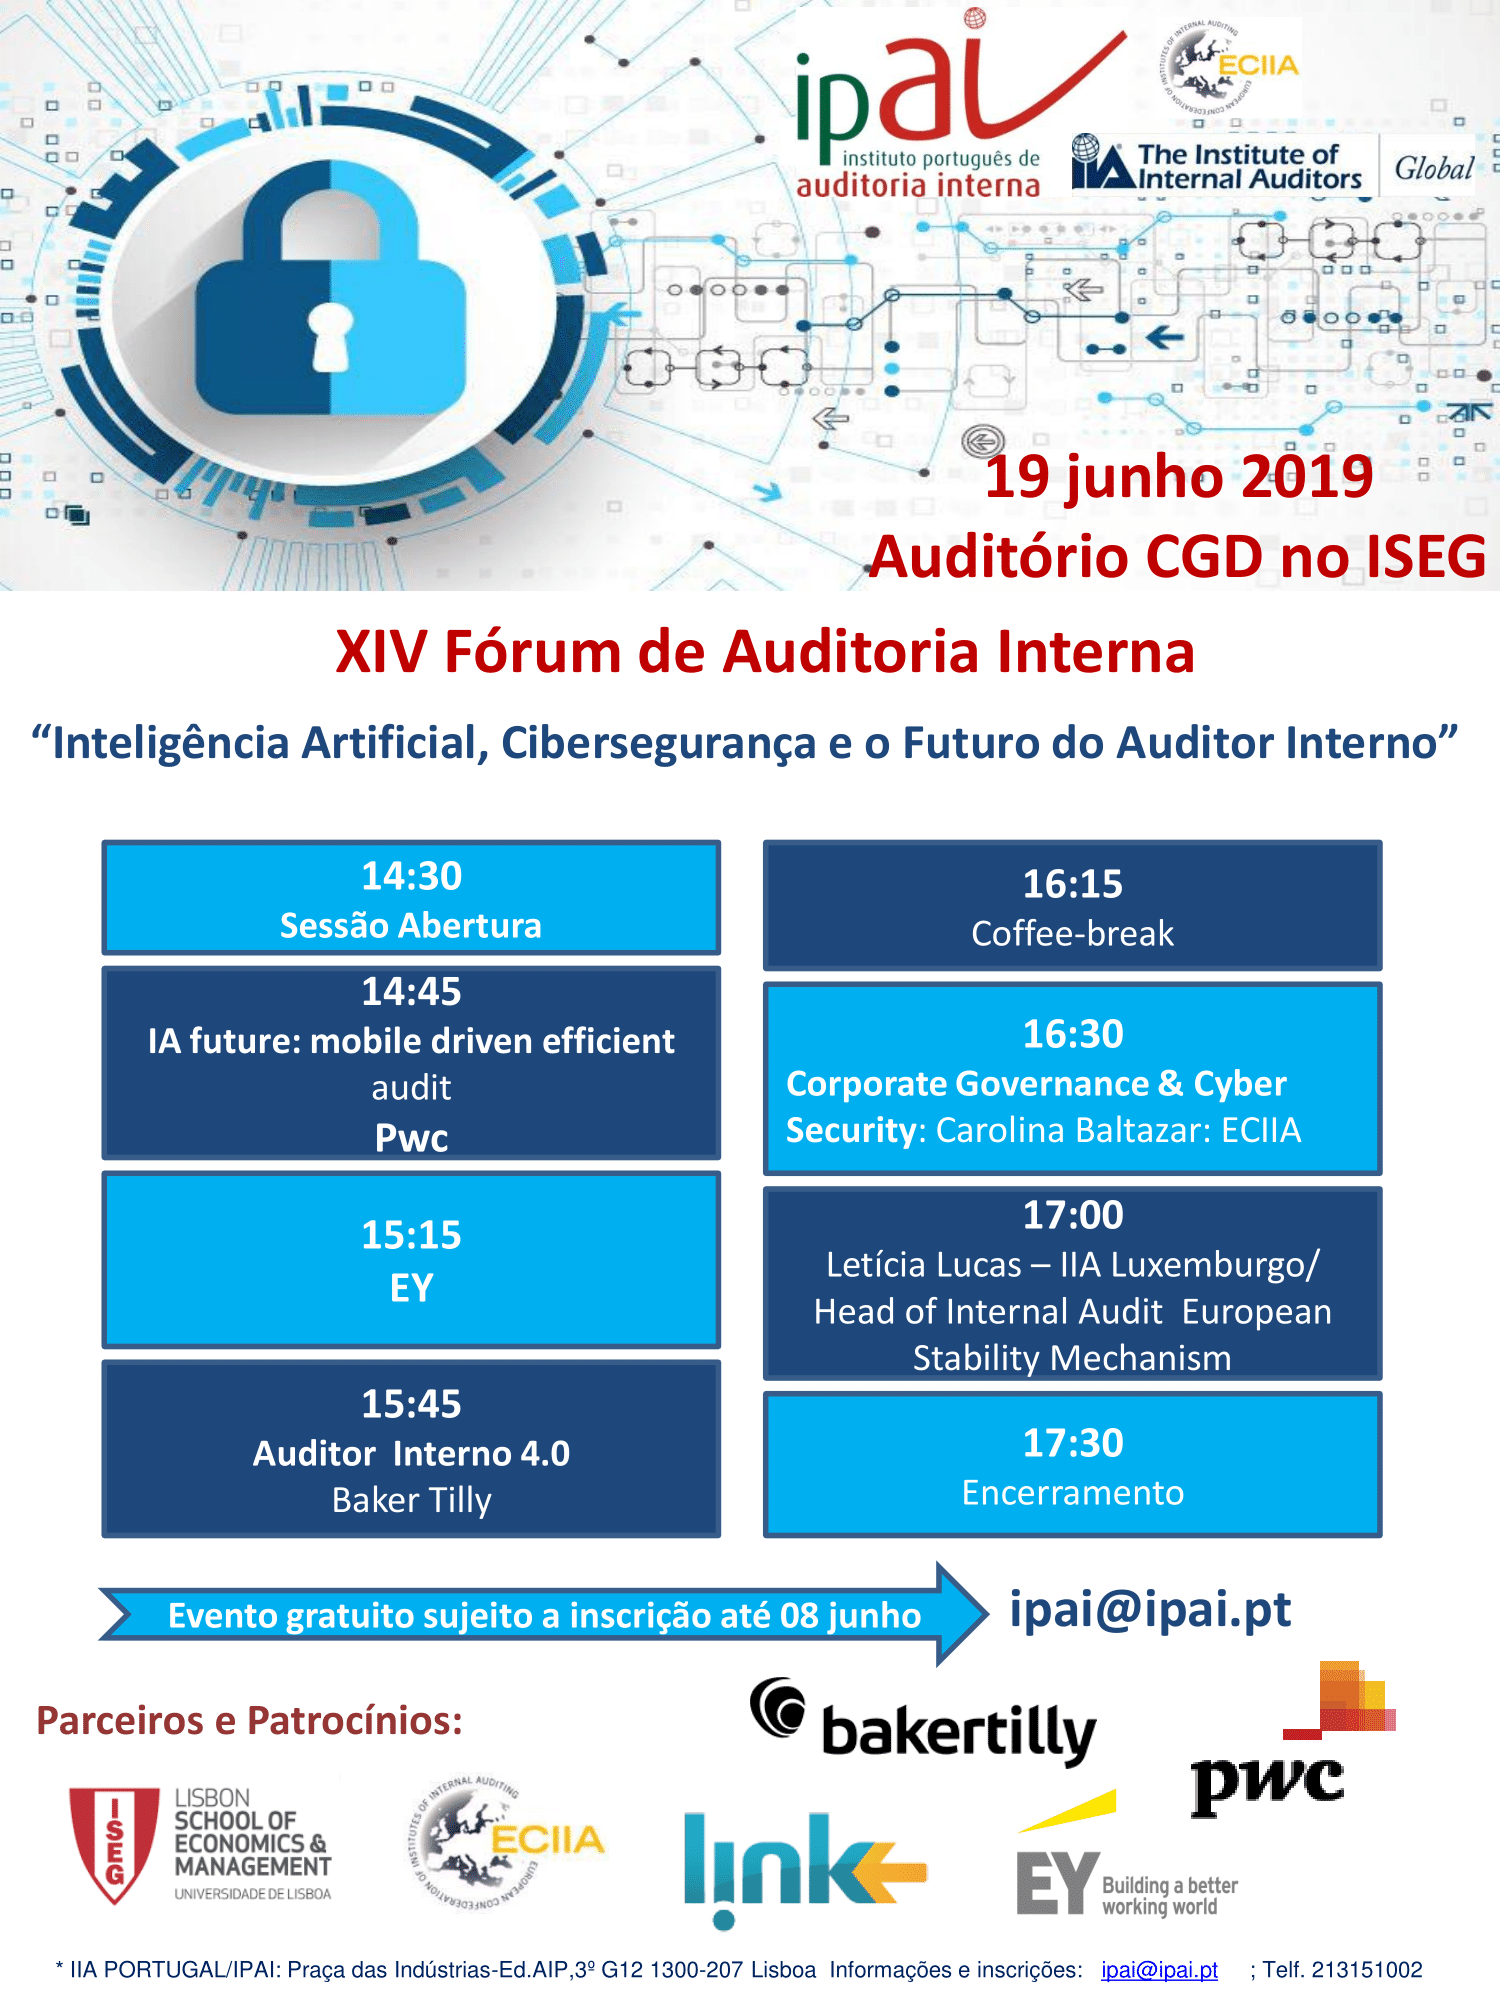 XIV Fórum Auditoria Interna 2019